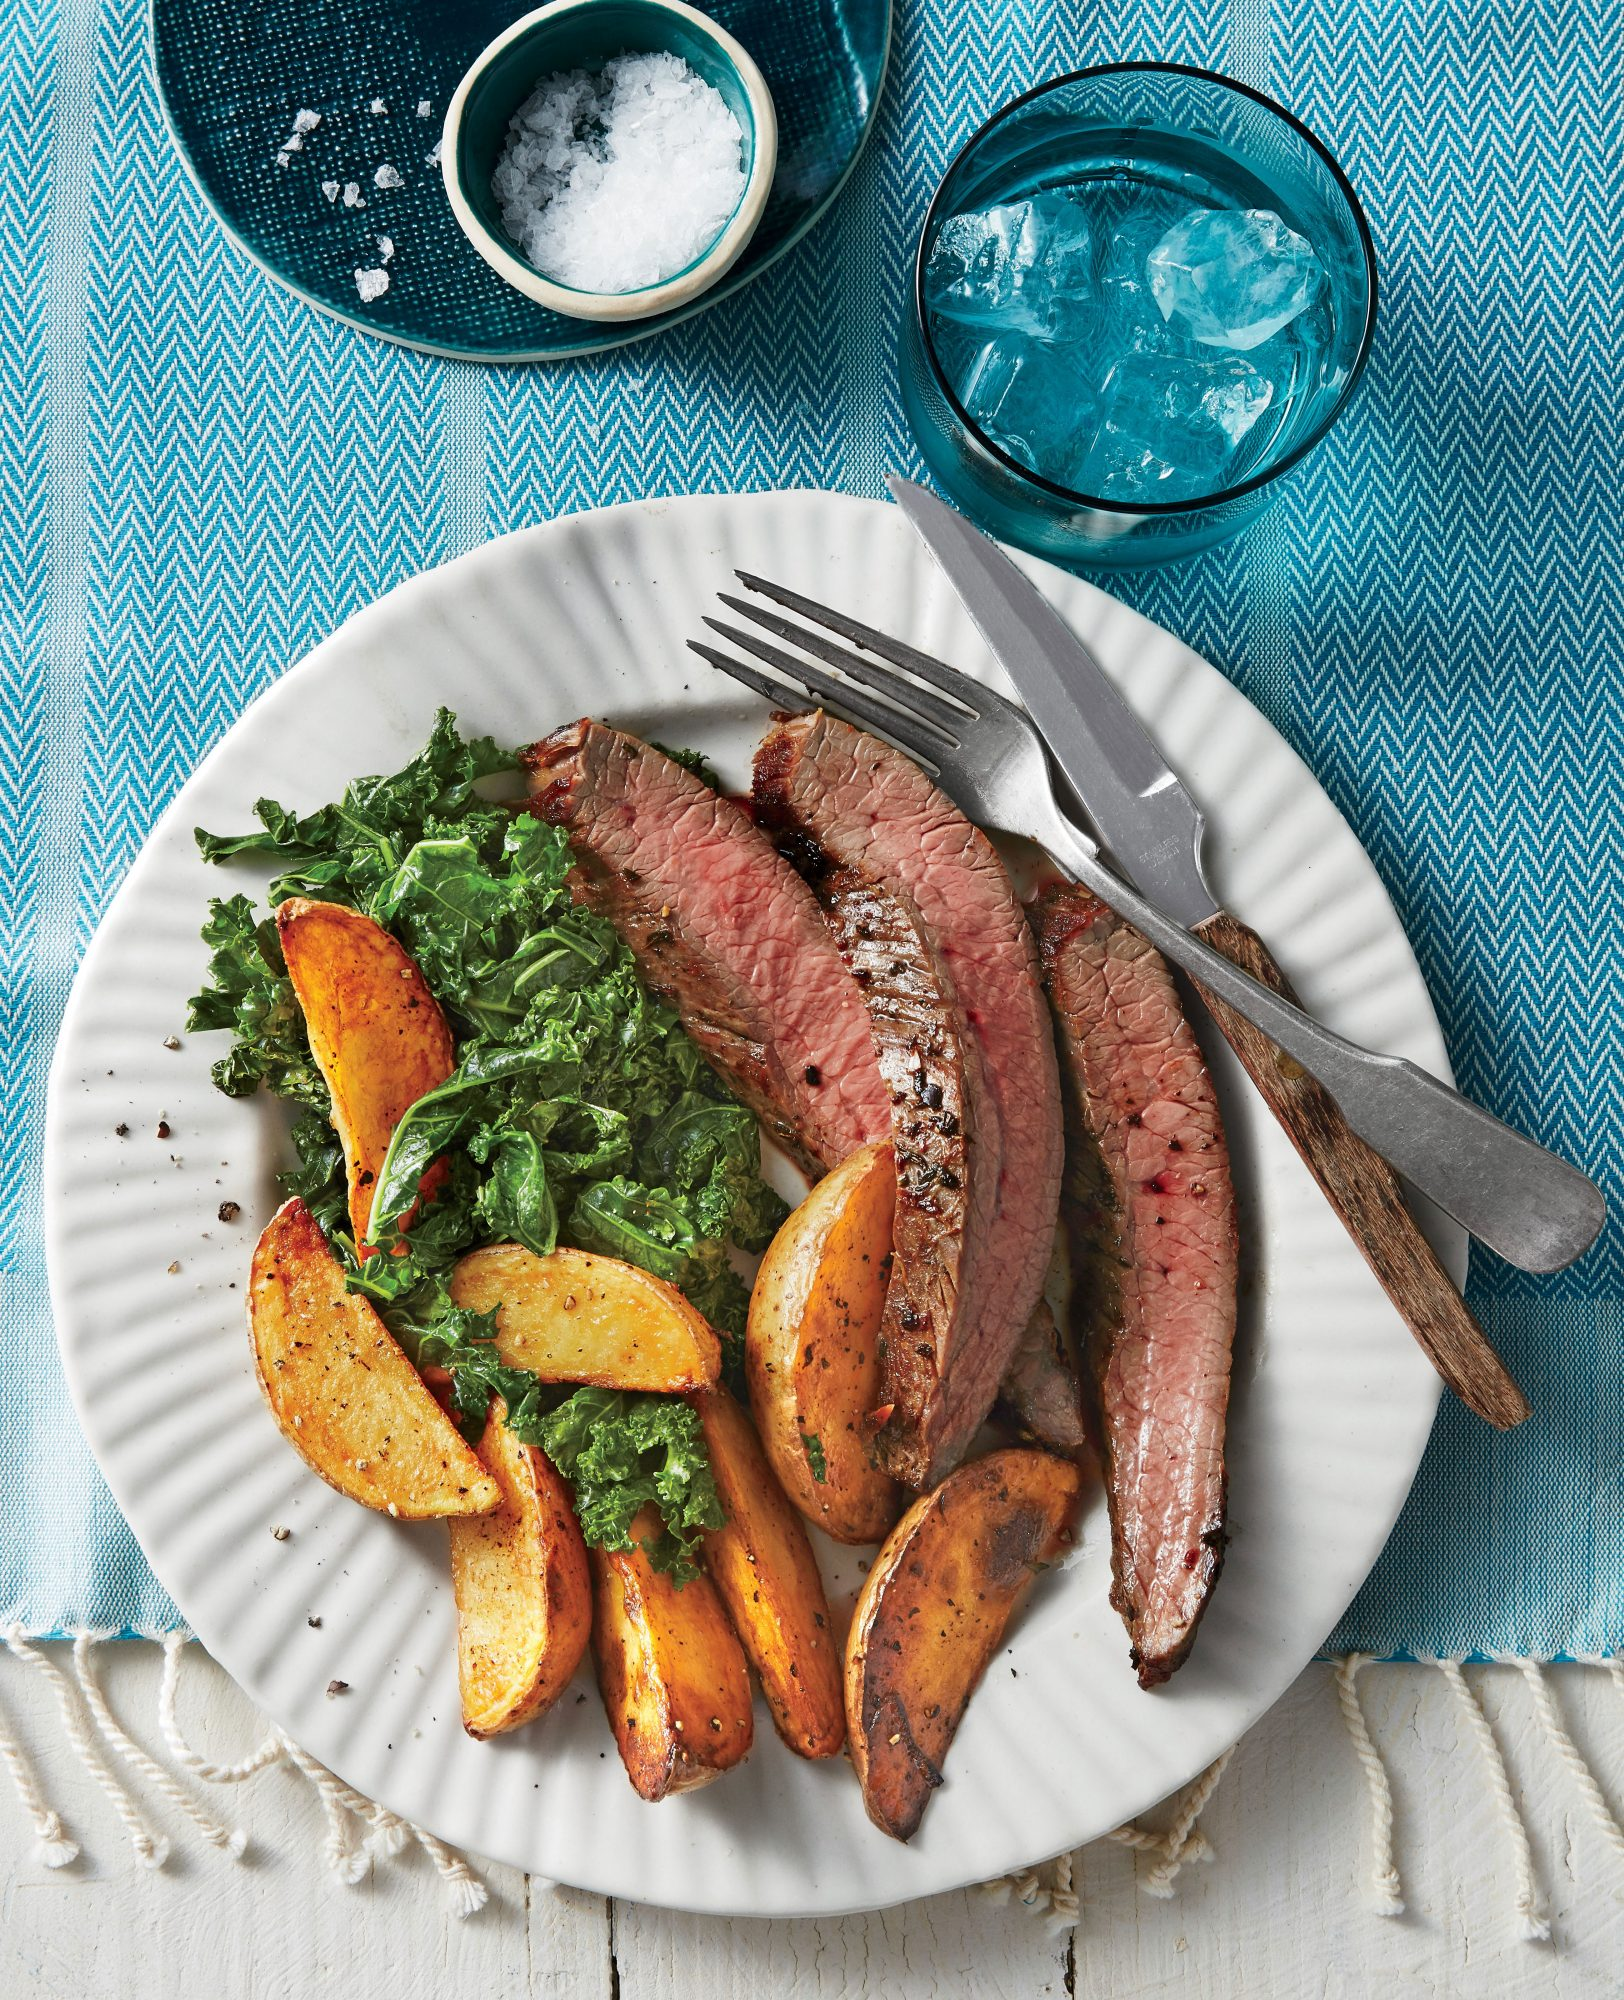 Simple Suppers Challenge: Sheet Pan Flank Steak, Greens, and Yukon Gold Fries